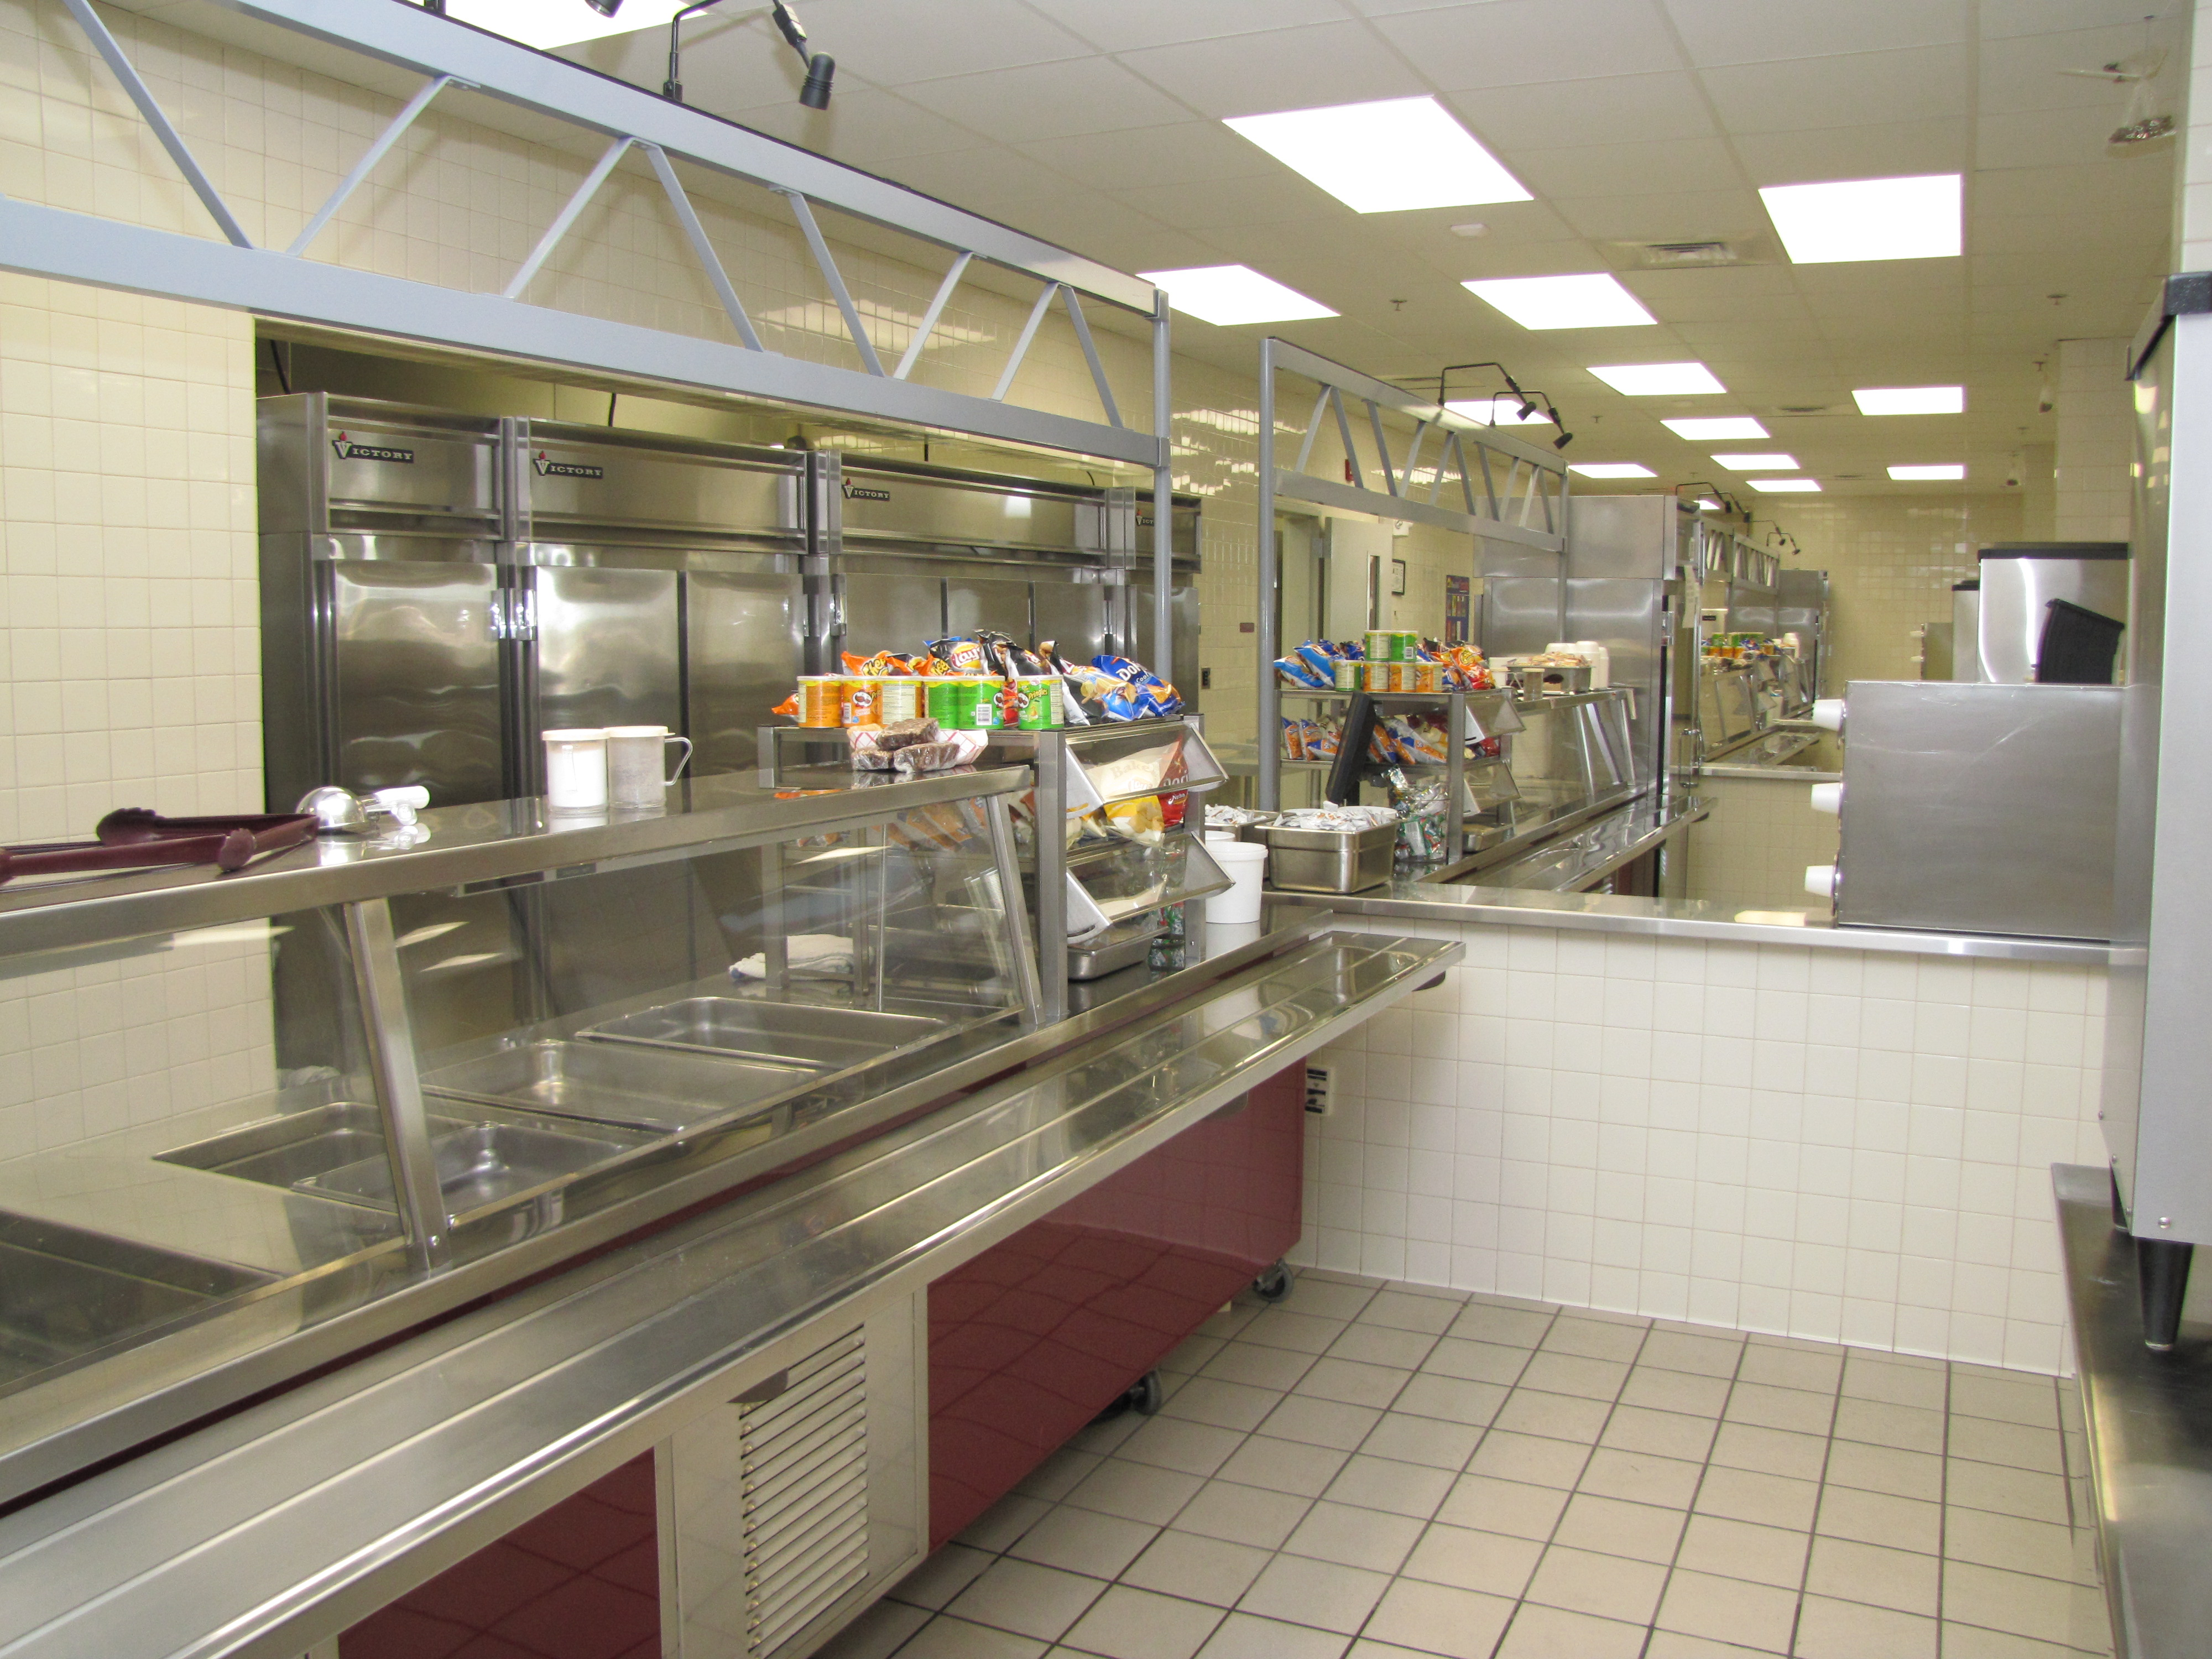 School Cafeteria Kitchen ~ Bunker hill high school cafeteria and kitchen hickory